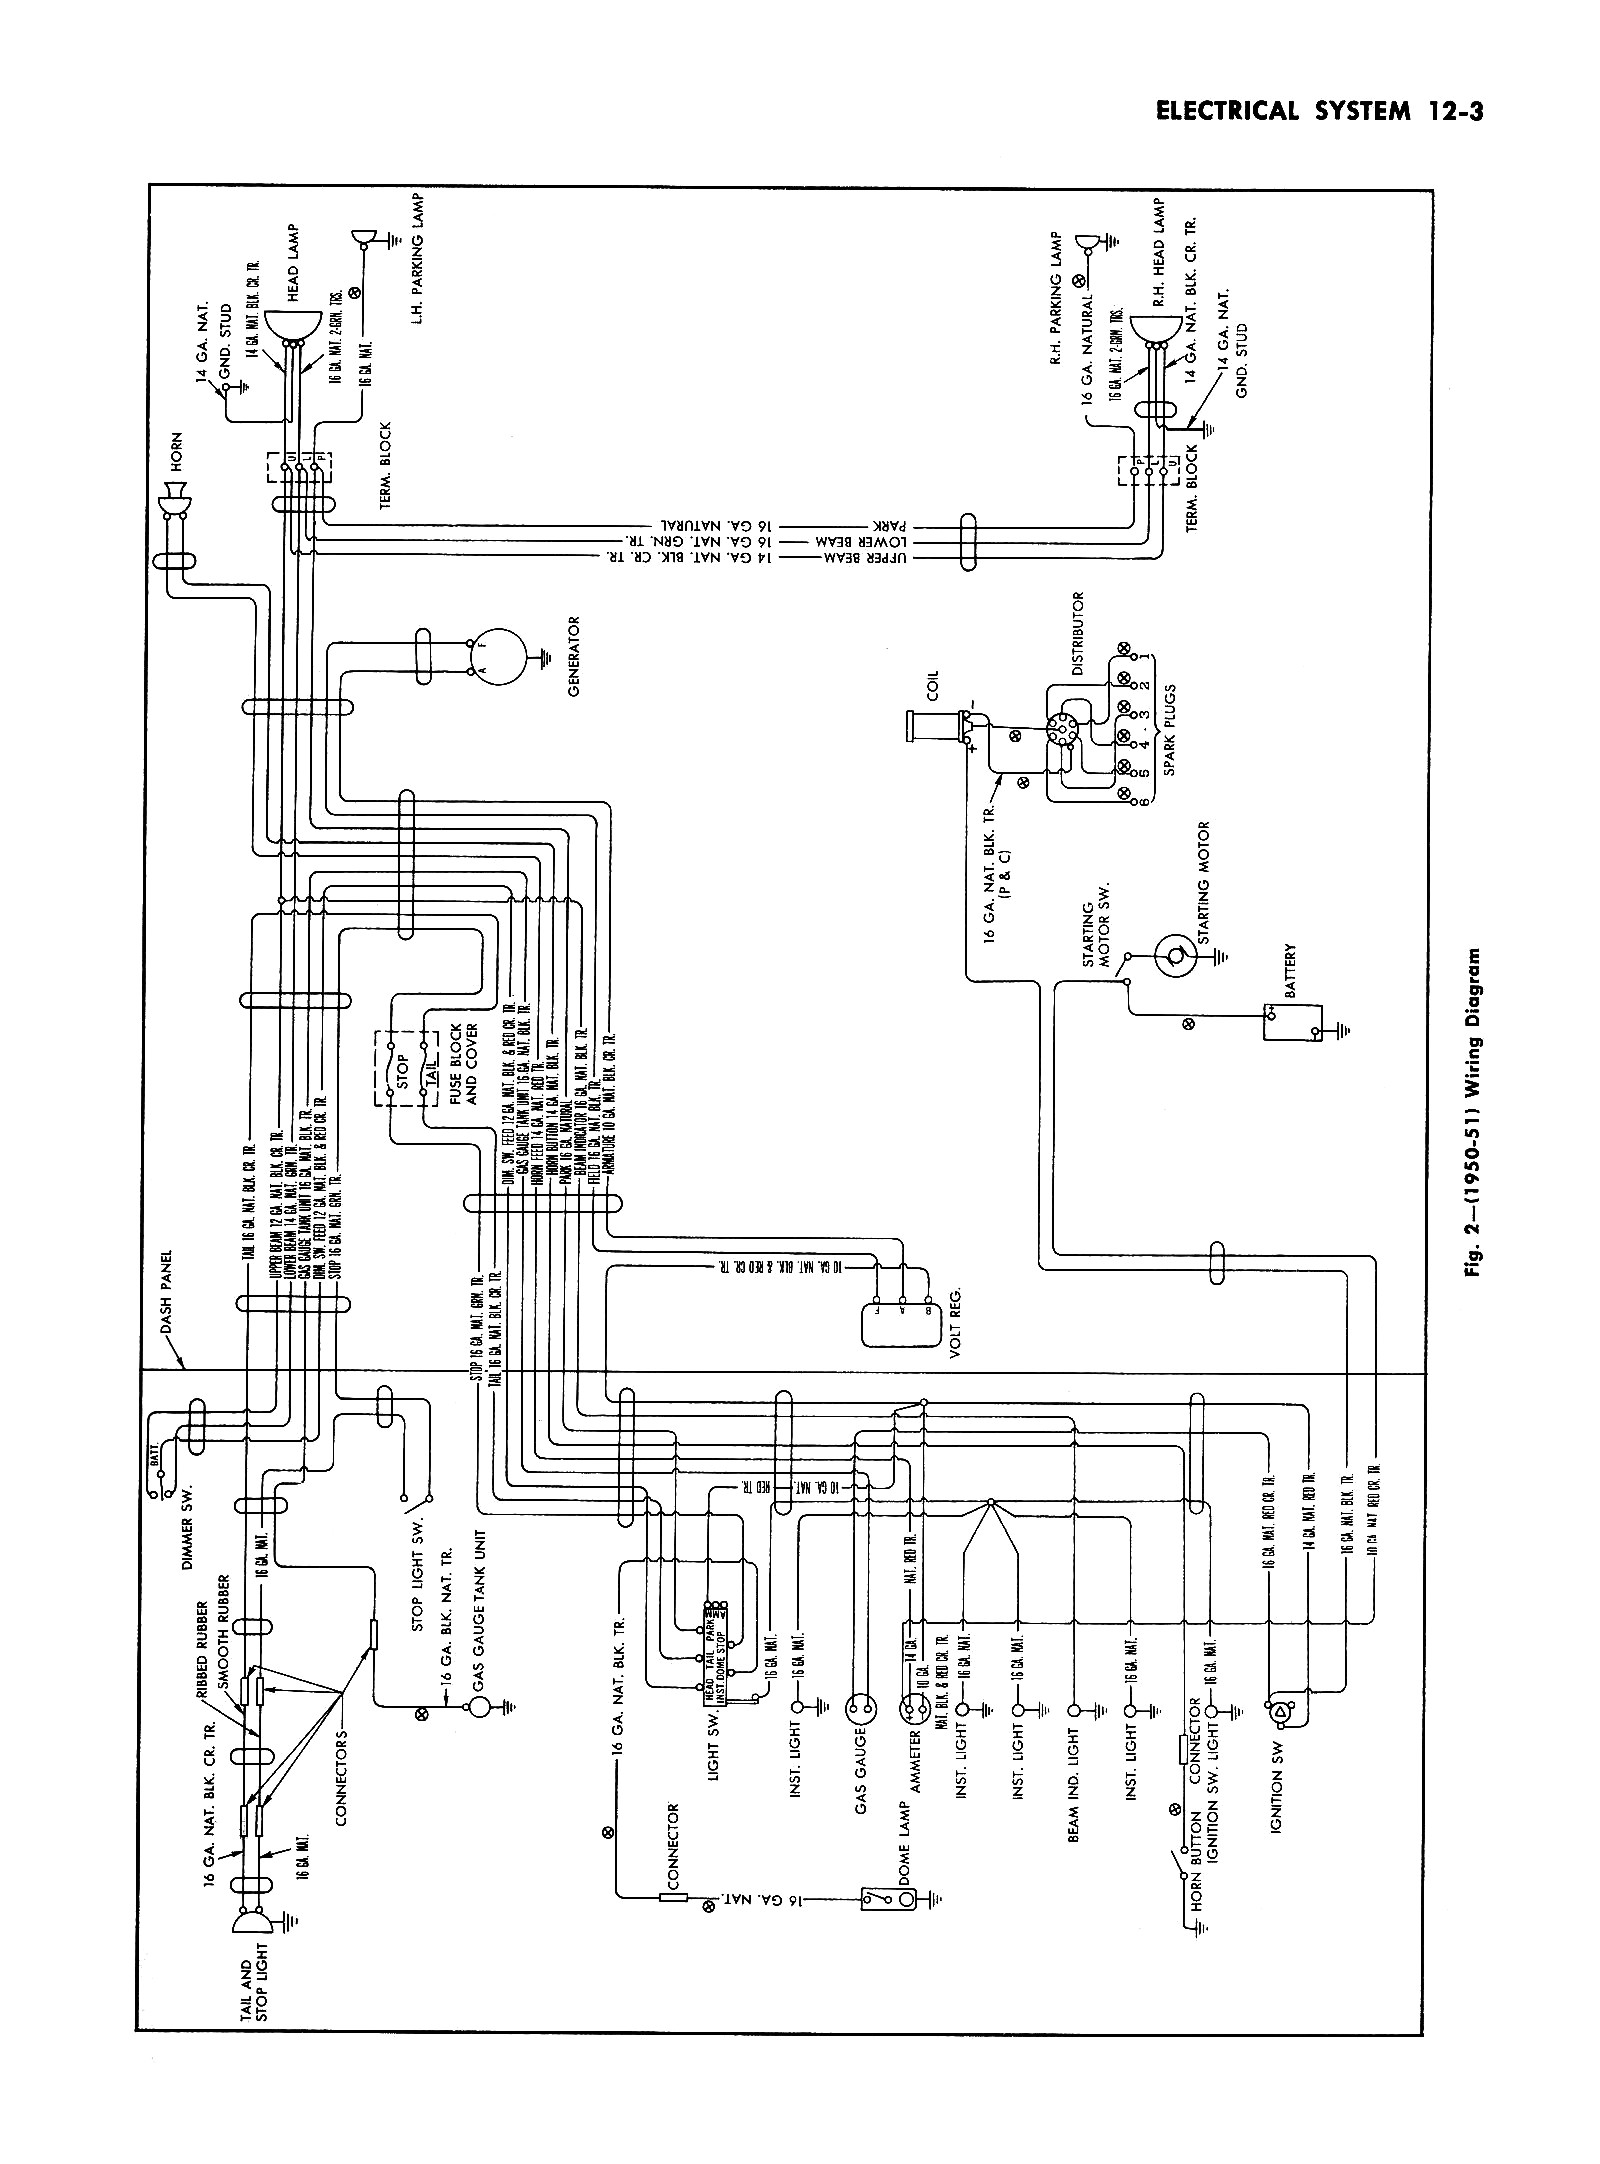 john deere 320 wiring-diagram, 240 volt 3 phase wiring diagram, john deere 3020 diagram, john deere model a exhaust, john deere 3010 wiring-diagram, john deere 145 wiring-diagram, john deere z225 wiring-diagram, 1929 ford model wiring diagram, john deere 4430 wiring-diagram, jd 4020 24 volt wiring diagram, john deere model a controls, john deere 4010 wiring-diagram, john deere m wiring-diagram, john deere model a parts, john deere 2755 hydraulic diagram, john deere model a crankshaft, john deere l120 hydrostatic transmission diagram, john deere 140 coil, john deere model a electrical system, john deere 345 wiring-diagram, on a model 1949 john deere wiring diagrams